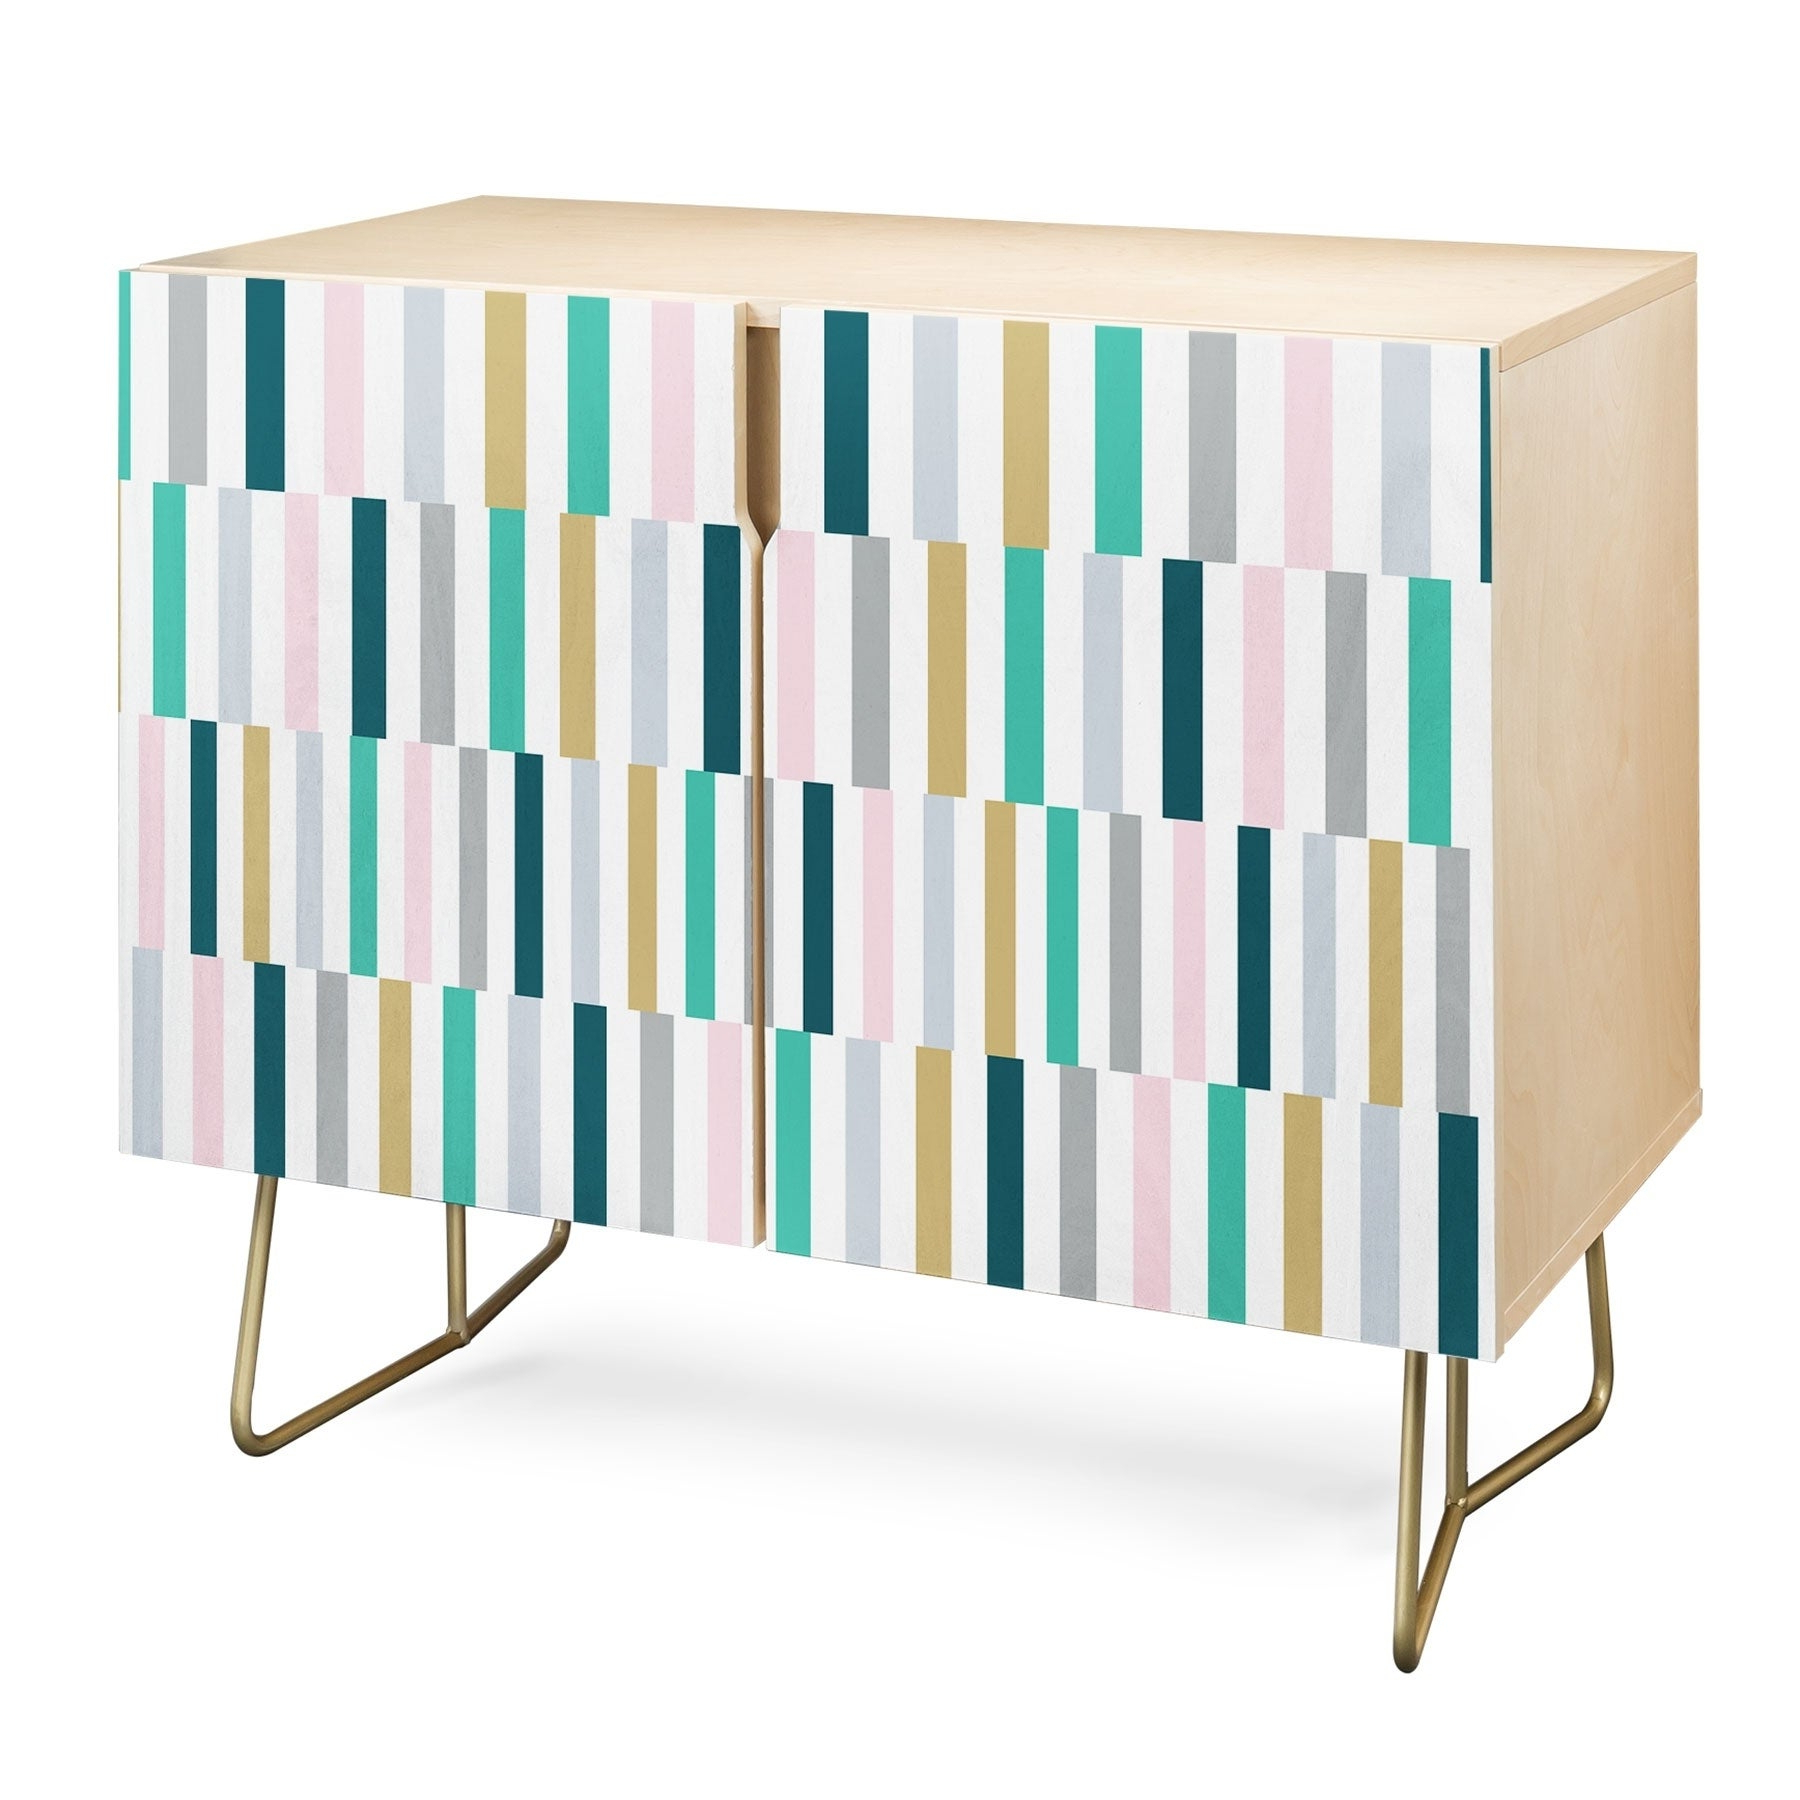 Deny Designs Scandi Stripes Credenza (Birch Or Walnut, 2 Leg Options) With Festival Eclipse Credenzas (View 11 of 20)